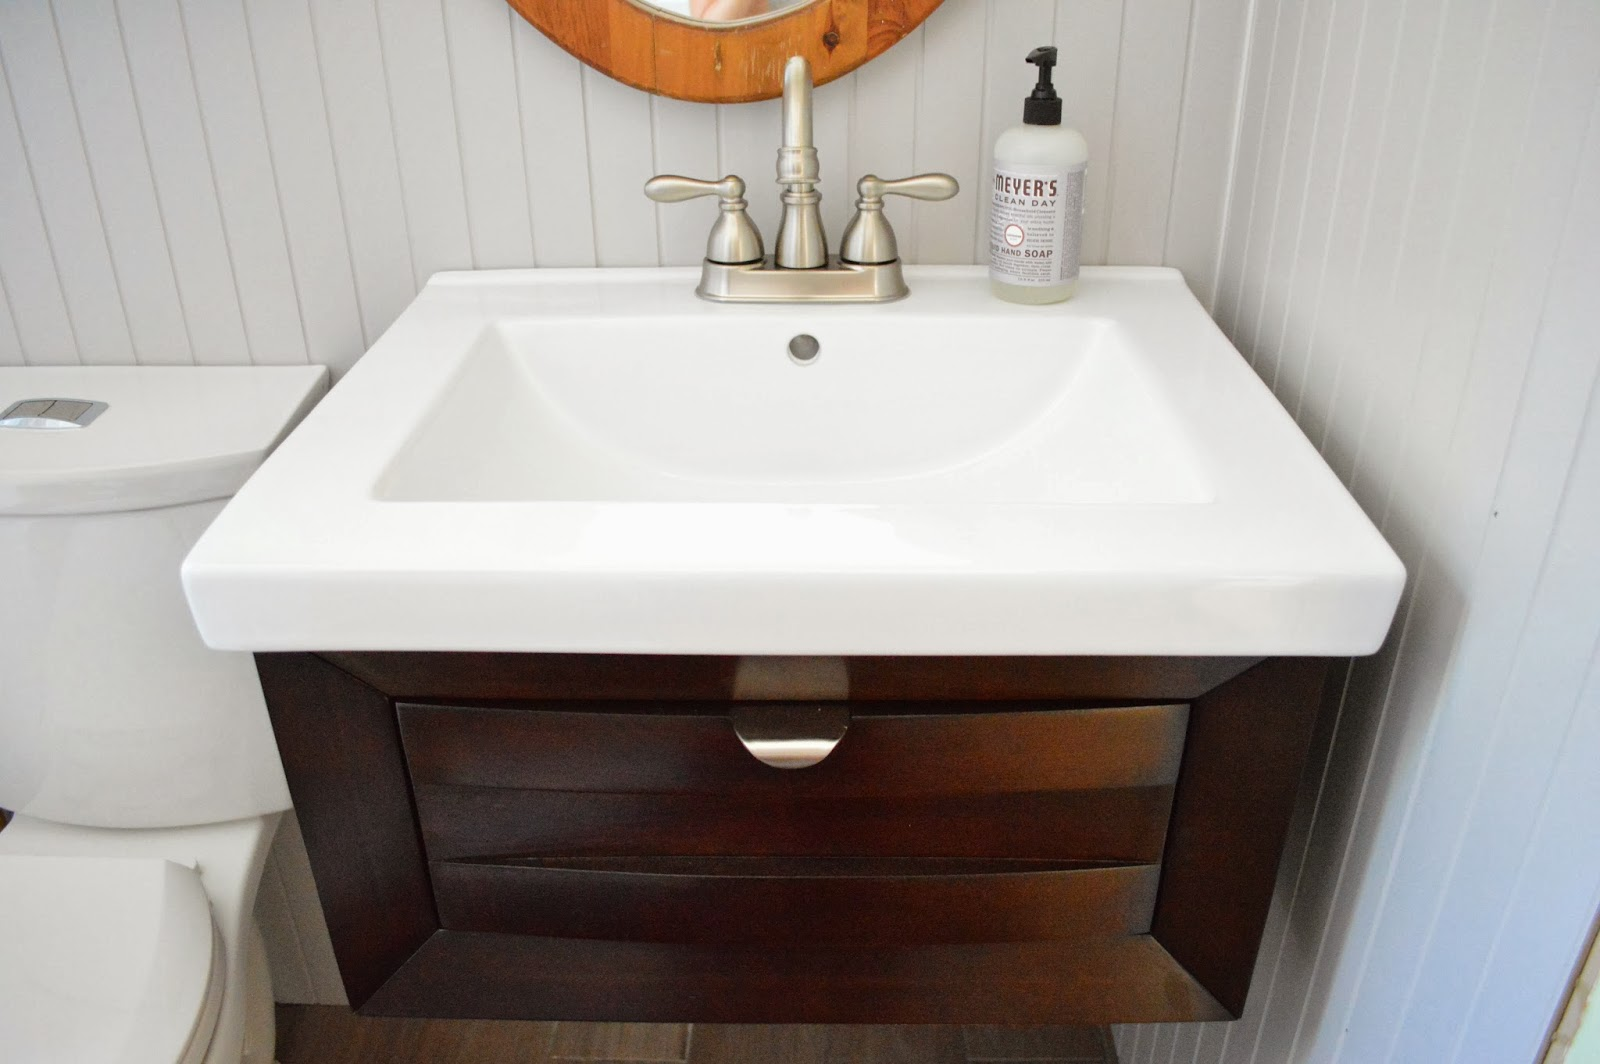 Narrow Double Sink Vanity March 2016 Bathroom Inspired 2016